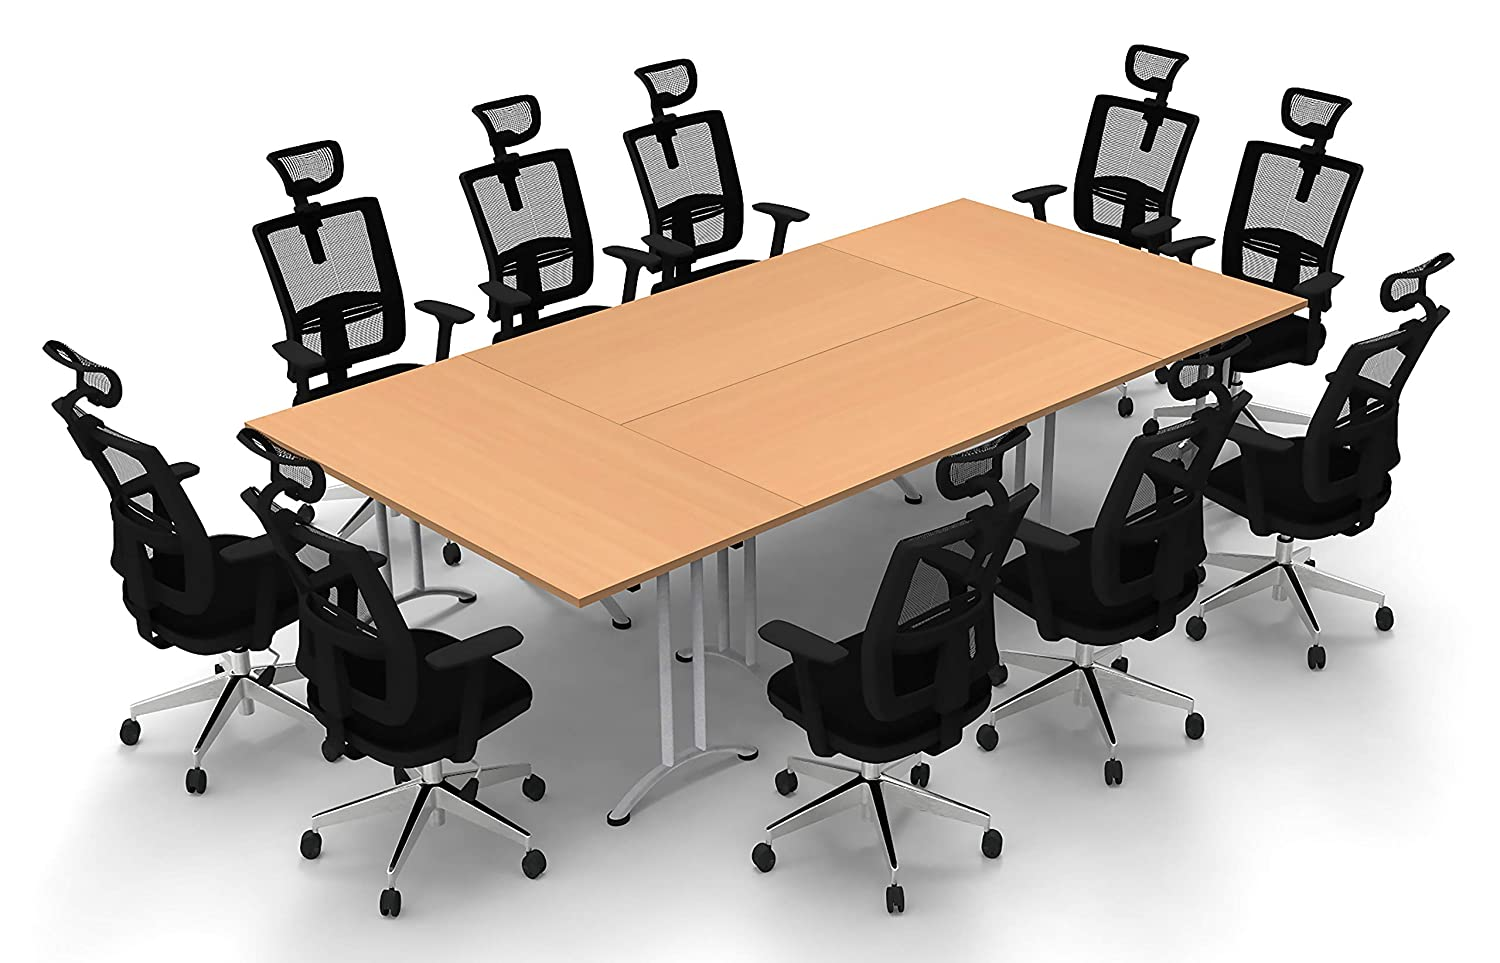 Amazon.com: Conference Tables Meeting Tables Seminar Tables ...